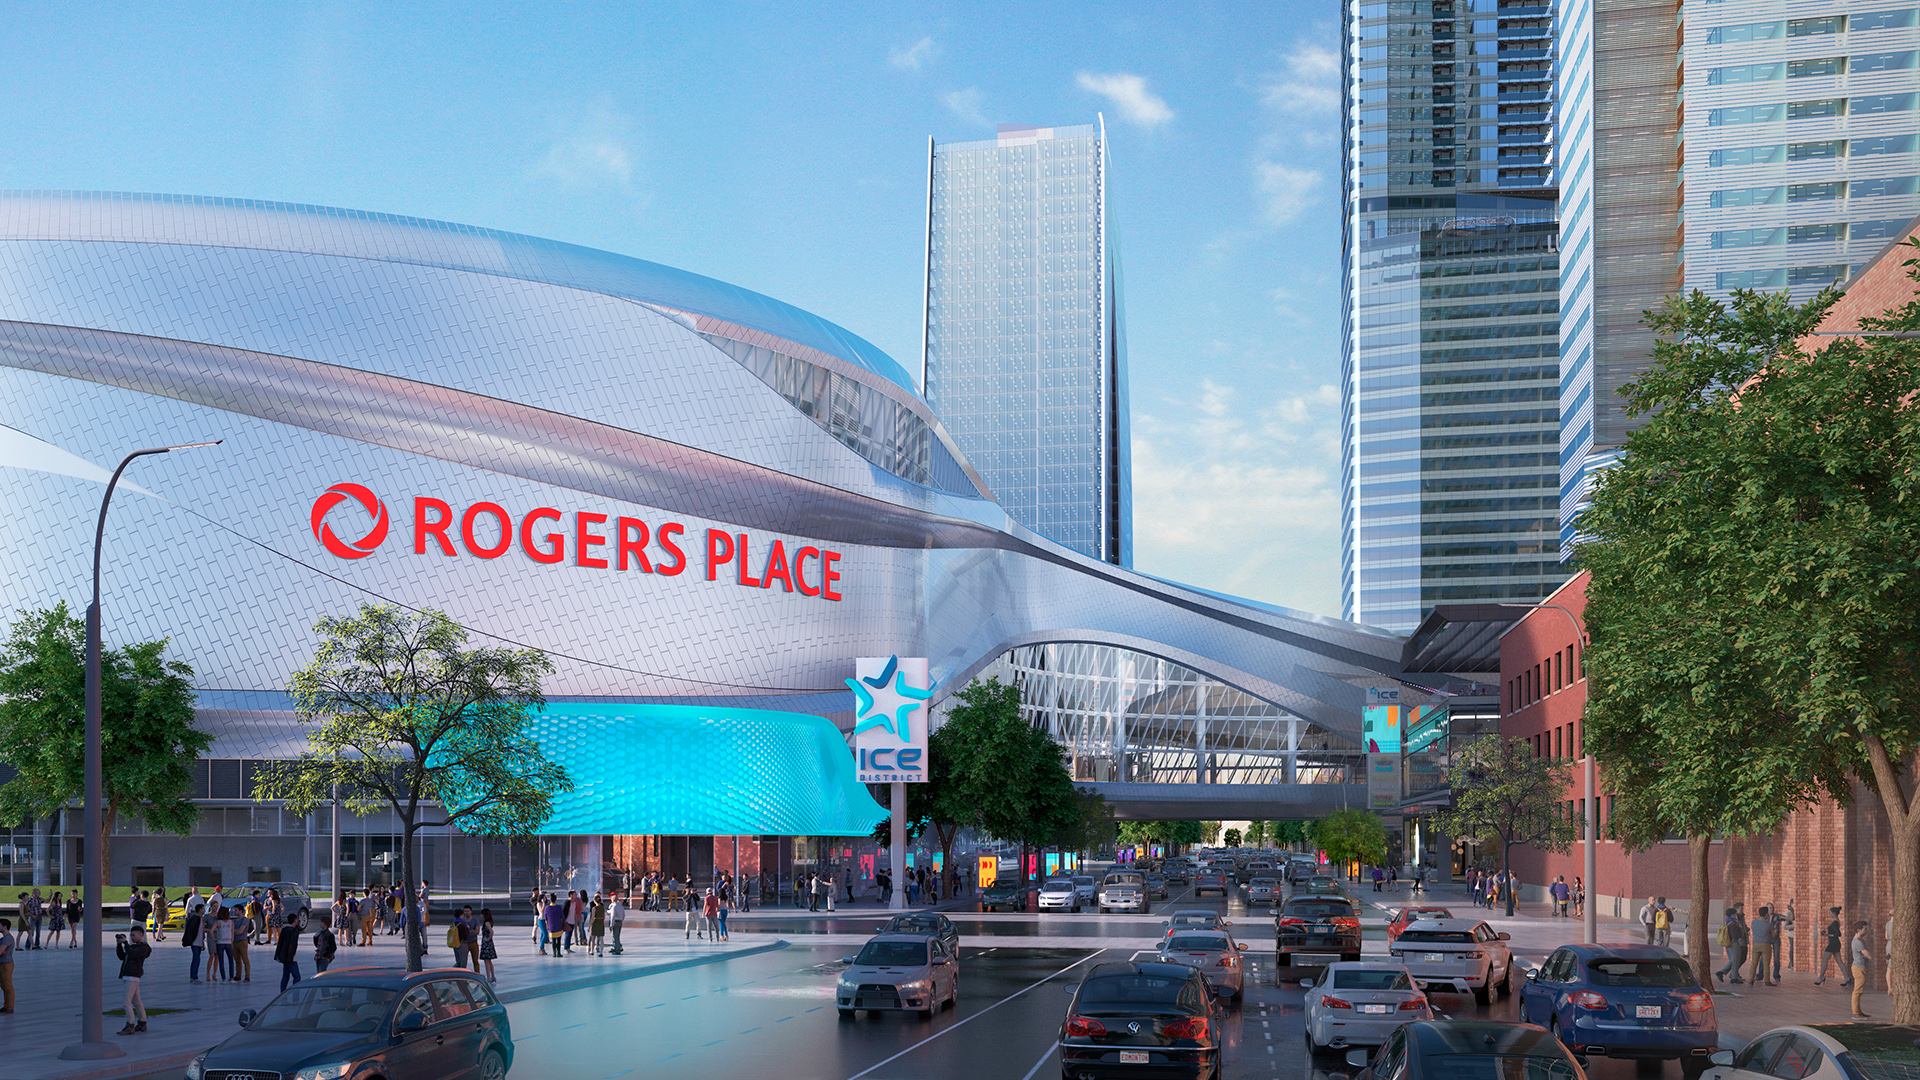 Rogers Place Casino